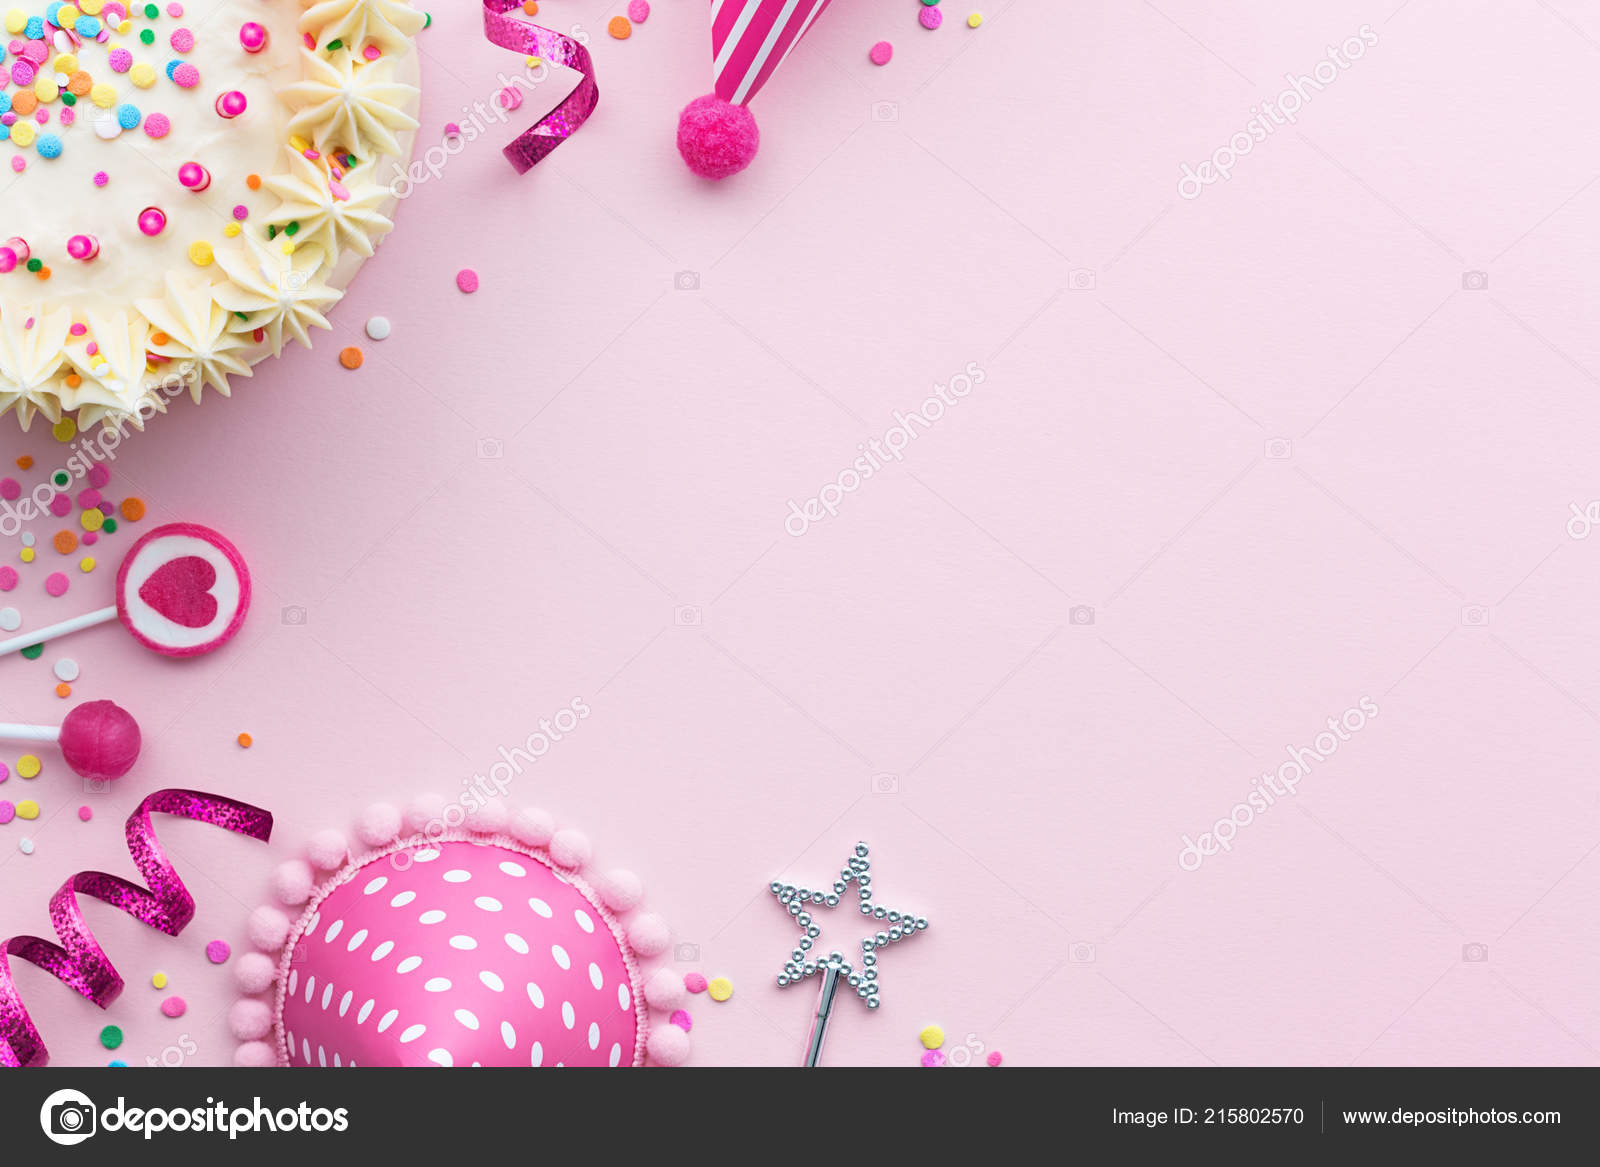 Background Pink Birthday Backgrounds Pink Birthday Party Background Birthday Cake Party Hats Stock Photo C Ruthblack 215802570